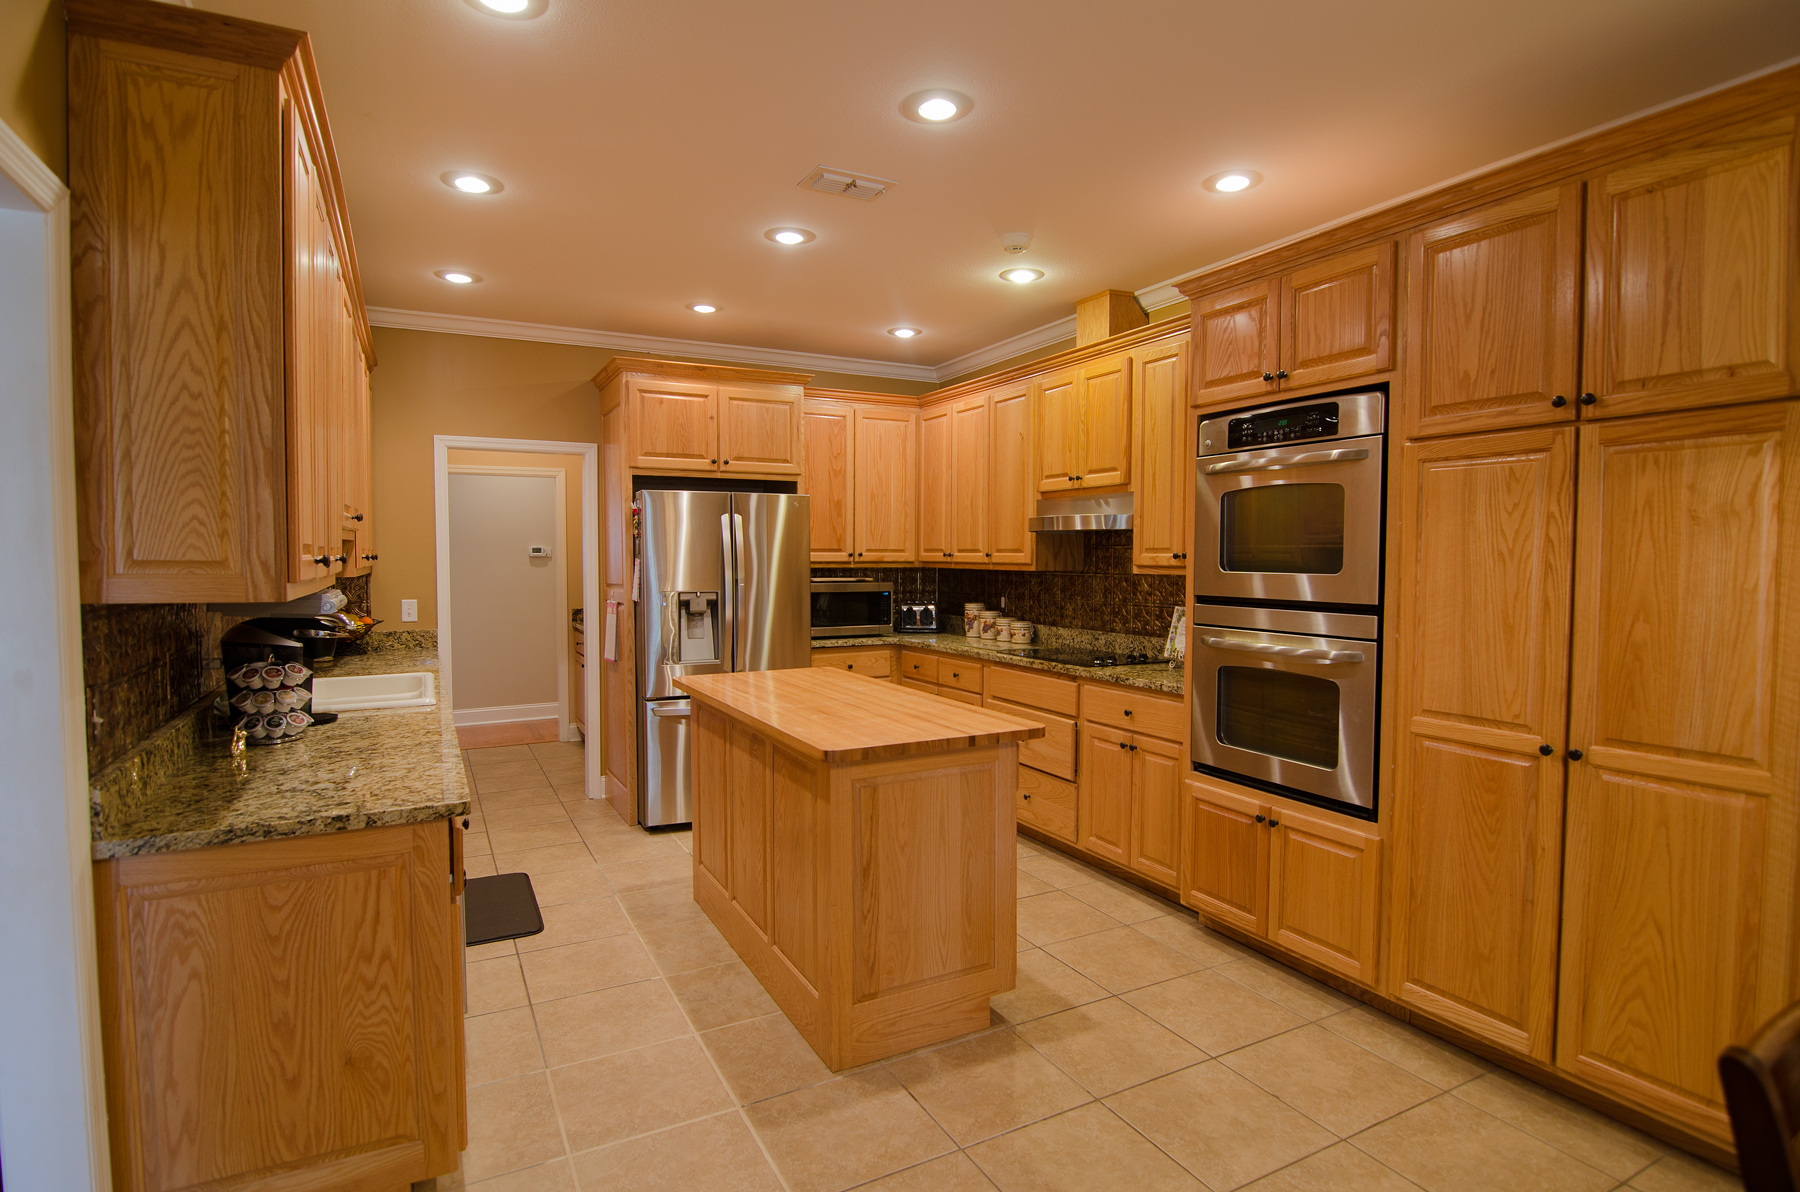 3riversrealty-kitchen.jpg